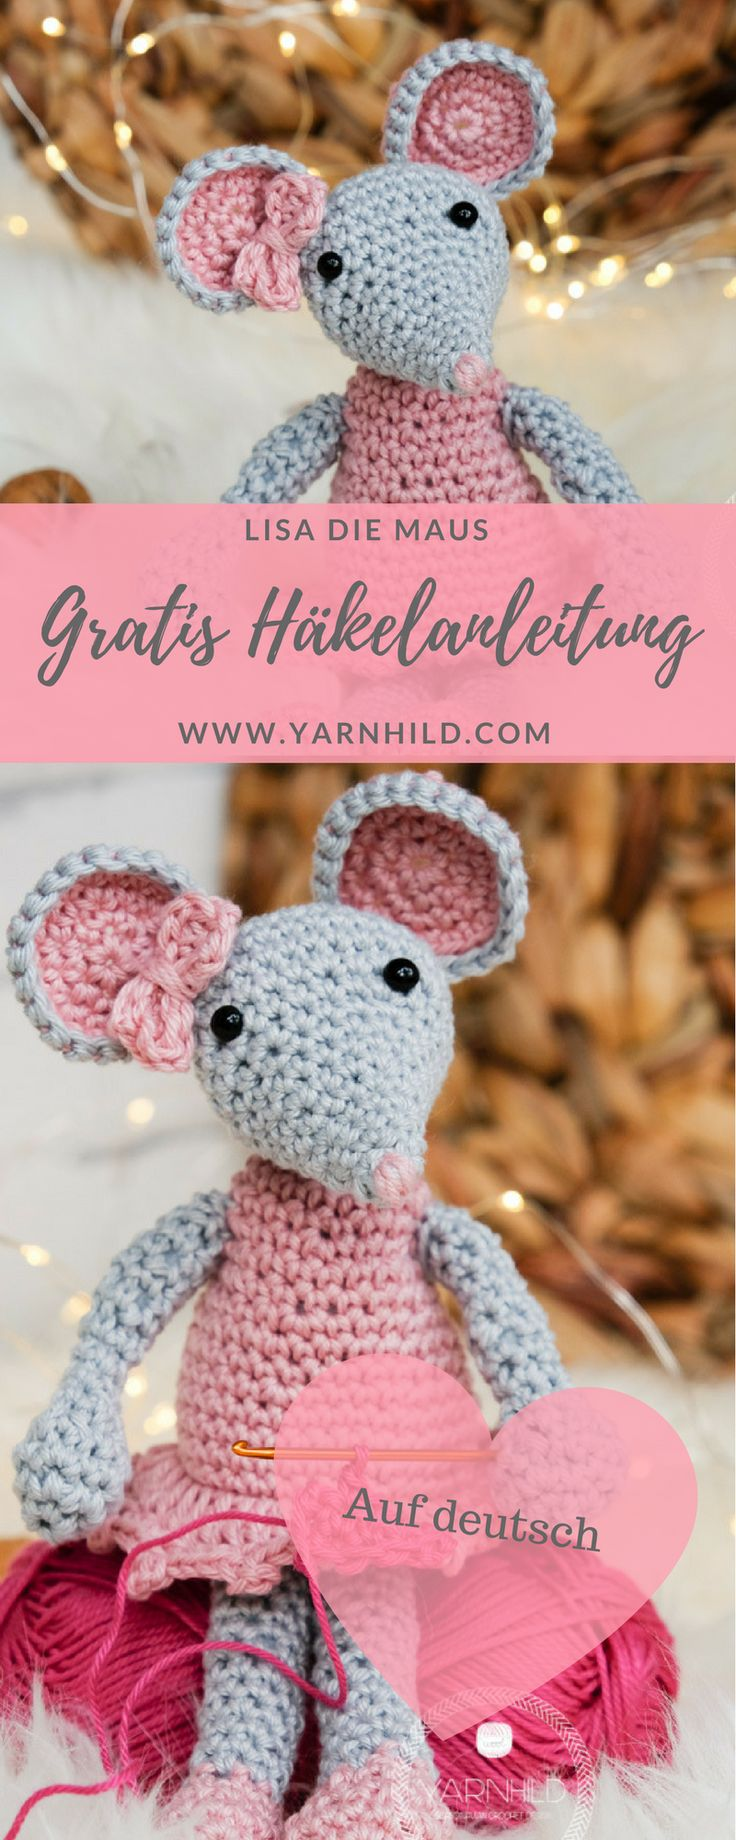 1167 best häkeln images on Pinterest | Crochet free patterns ...